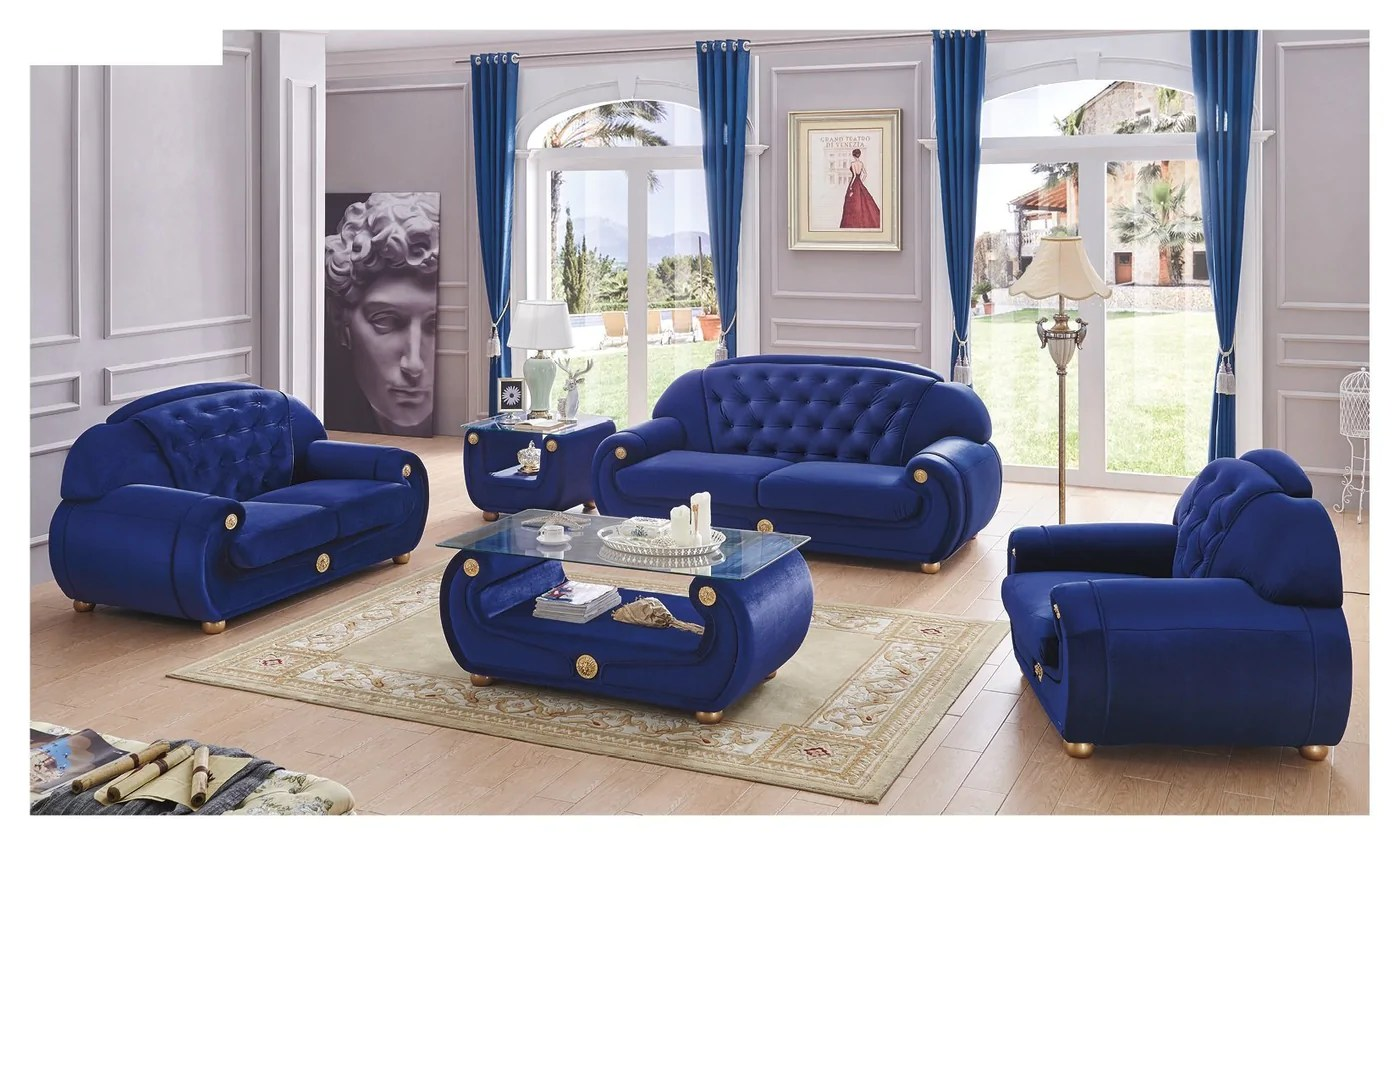 sofas dark blue willow and hall 3 seater sofa bed esf forest furniture giza fabric in